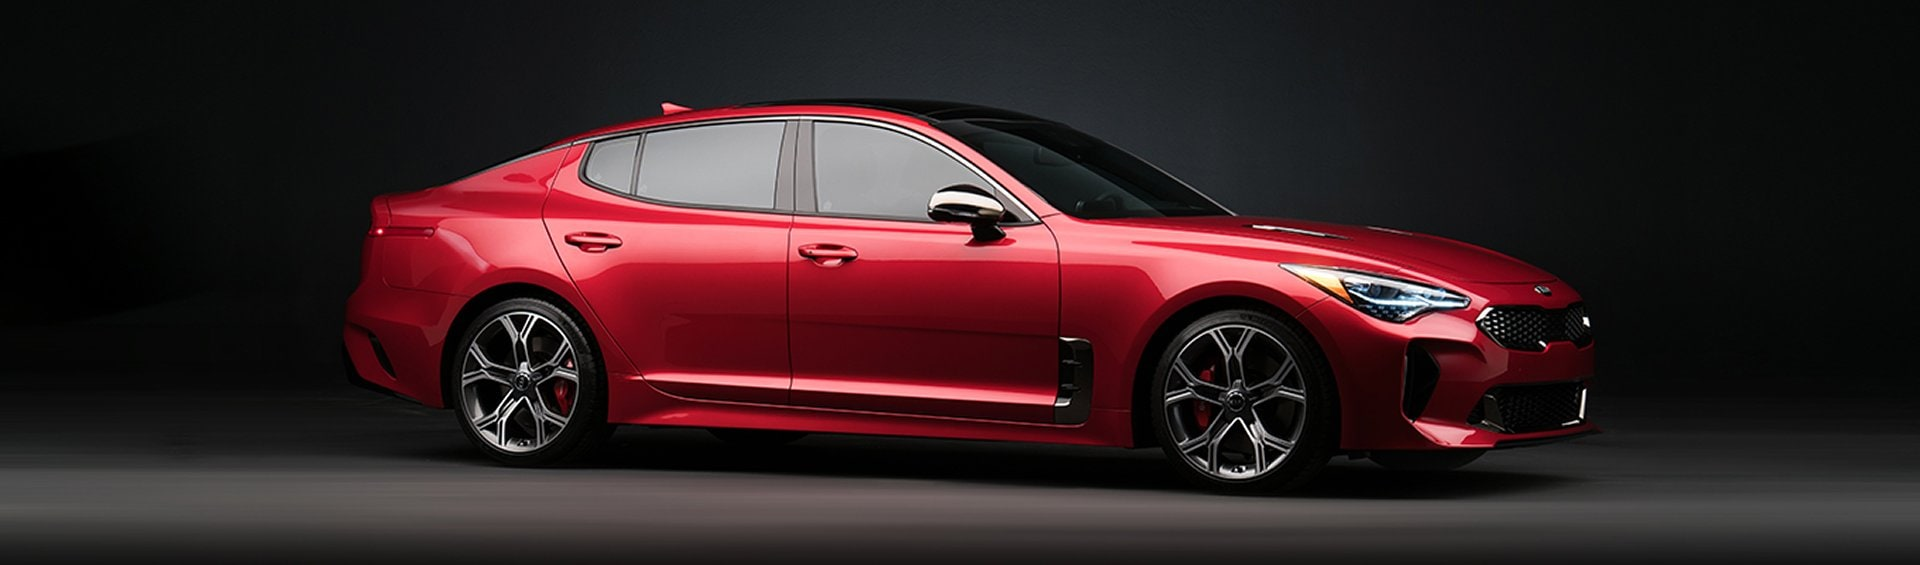 New Kia Stinger - Palm Beach Gardens, FL